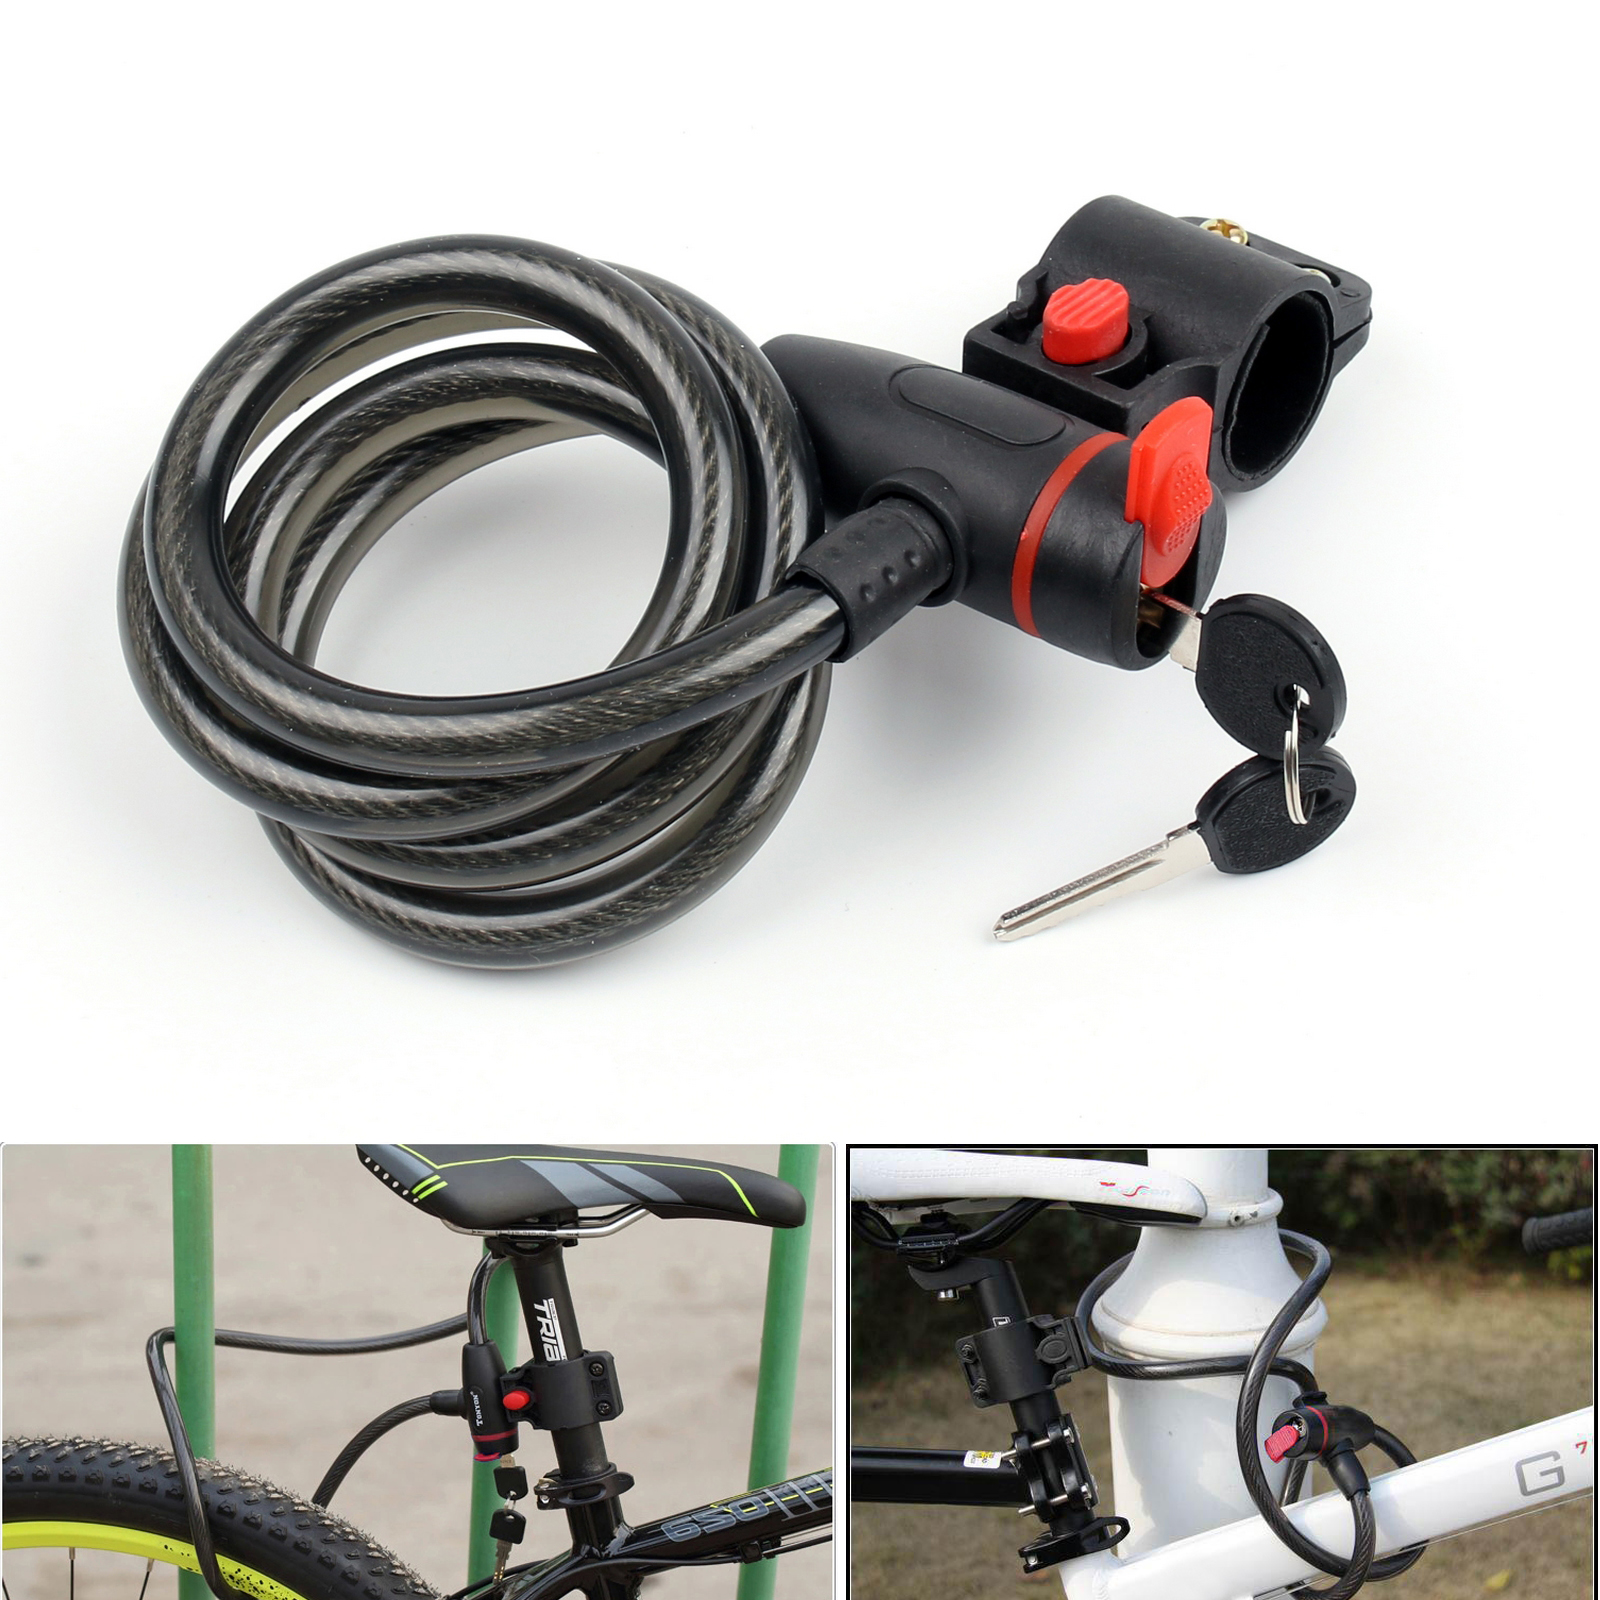 Areyourshop Bicycle Bike Cycle Motorbike Heavy Duty Coil Lock Steel Cable Chain Key Lock Steel Cable Chain Key Accessories